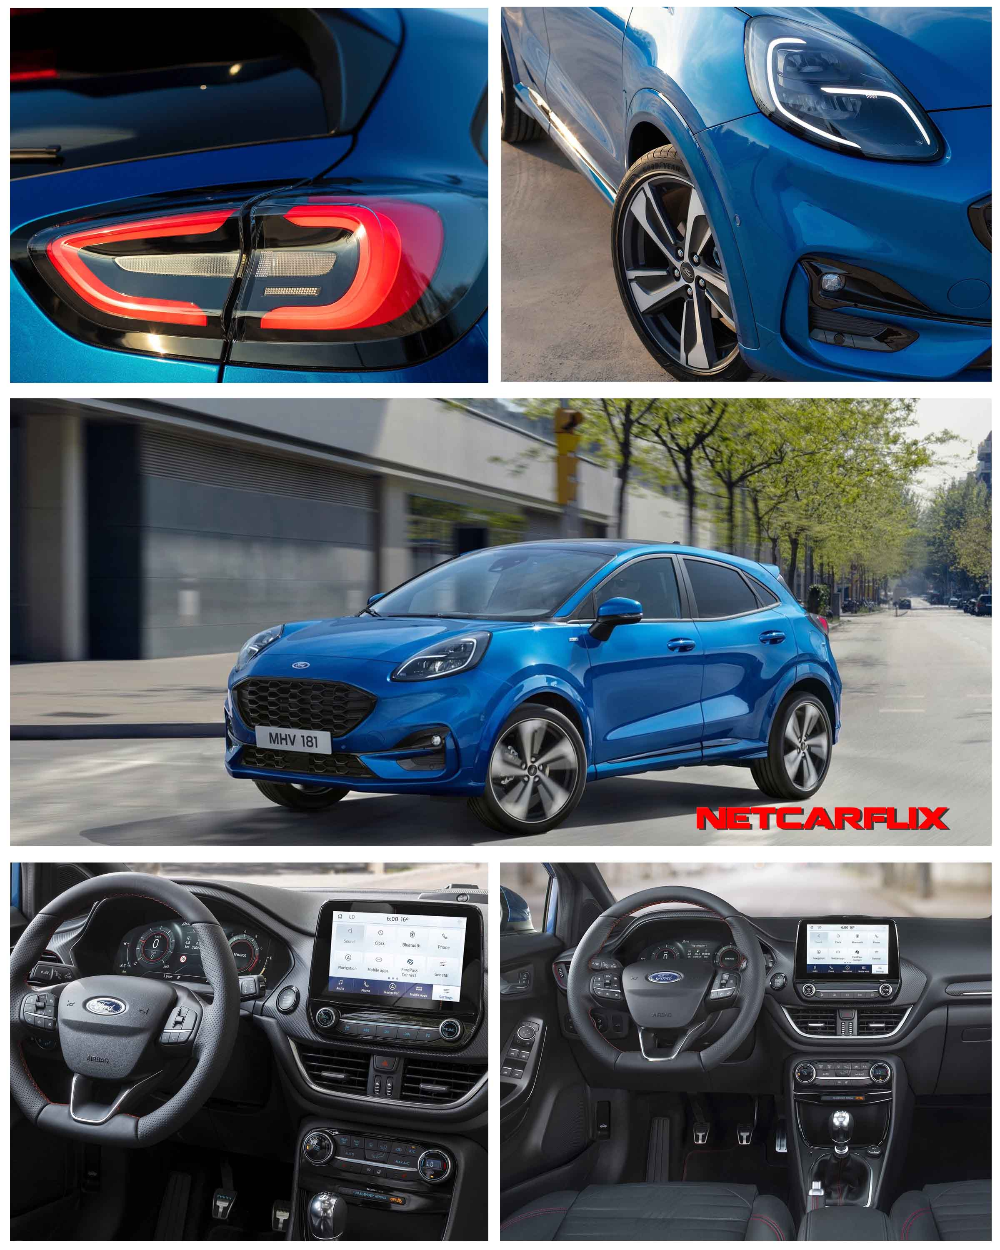 2020 Ford Puma Hd Pictures Videos Specs Information Ford Puma Ford Puma